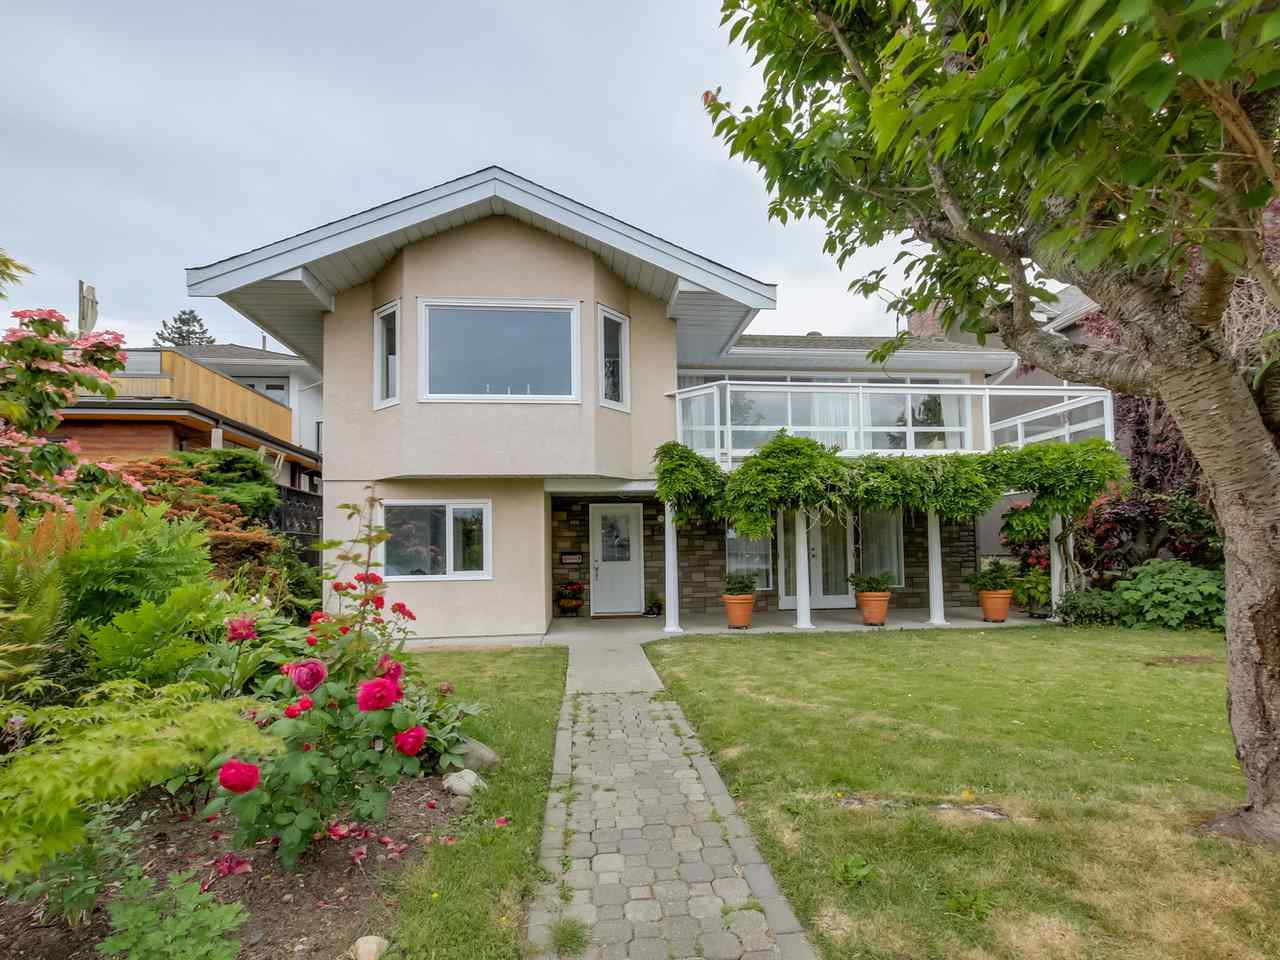 Photo 13: Photos: 1014 CALVERHALL Street in North Vancouver: Calverhall House for sale : MLS® # R2090205